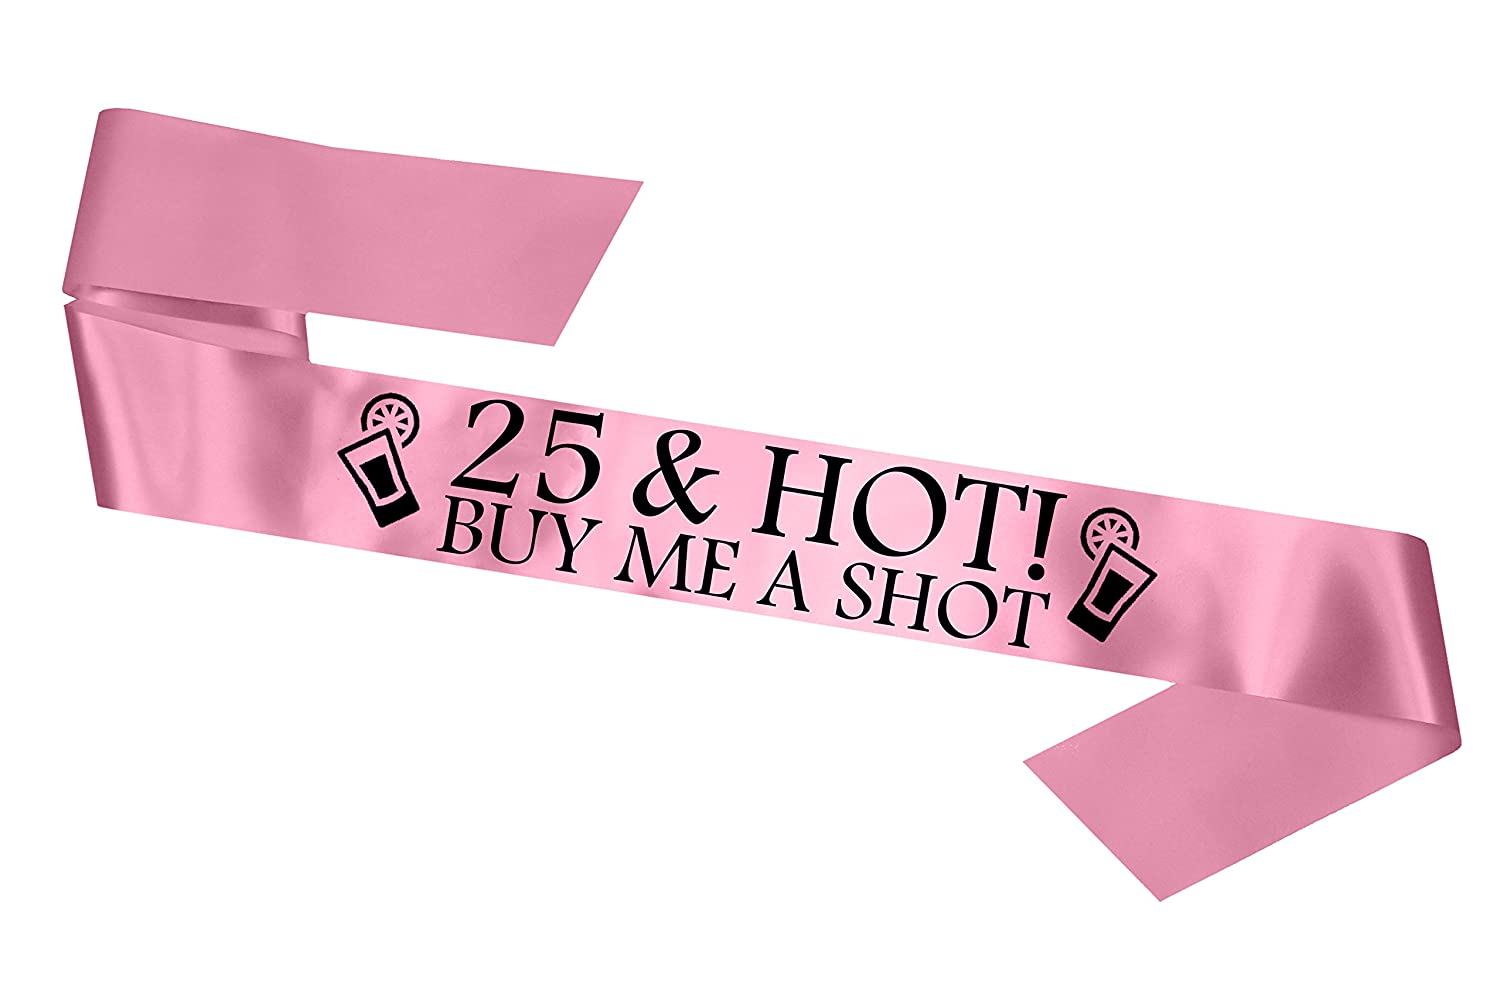 '25 & Hot - Buy me a Shot!' Party Sash 25th Birthday Night Going Out Sashes Accessory Gift Badge Novelty - Baby Pink Fancy Pants Store Ltd